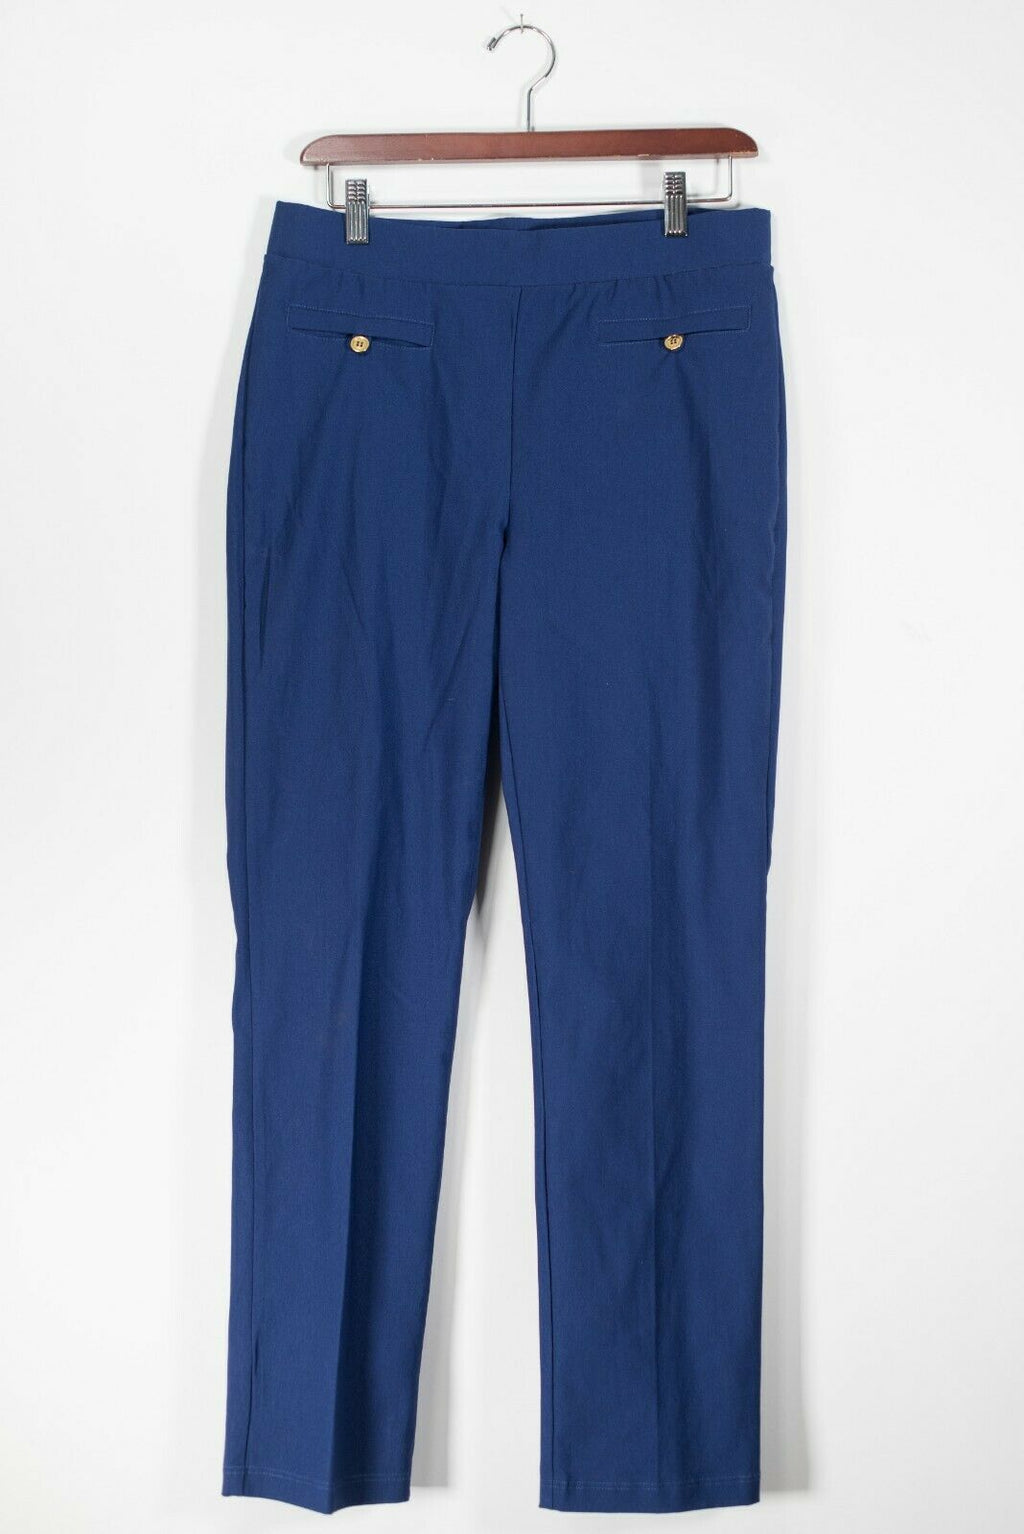 Studio Point Women's Small Blue Dress Pants Rayon Stretch Elastic Waist Trousers